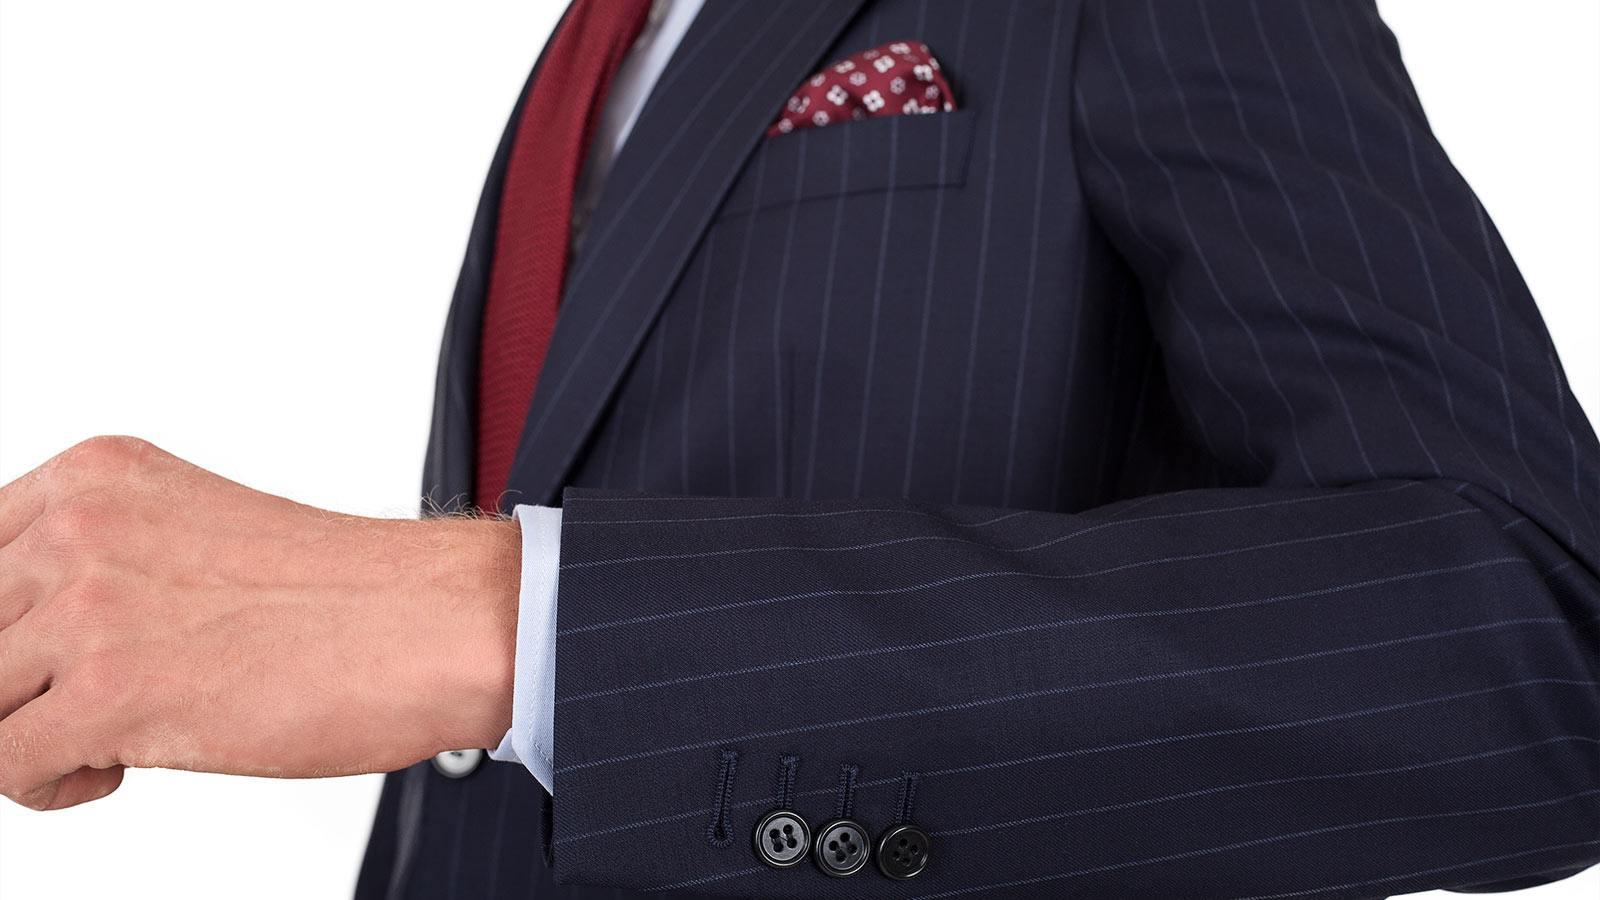 Suit in Navy Chalkstripe Wool - slider image 1